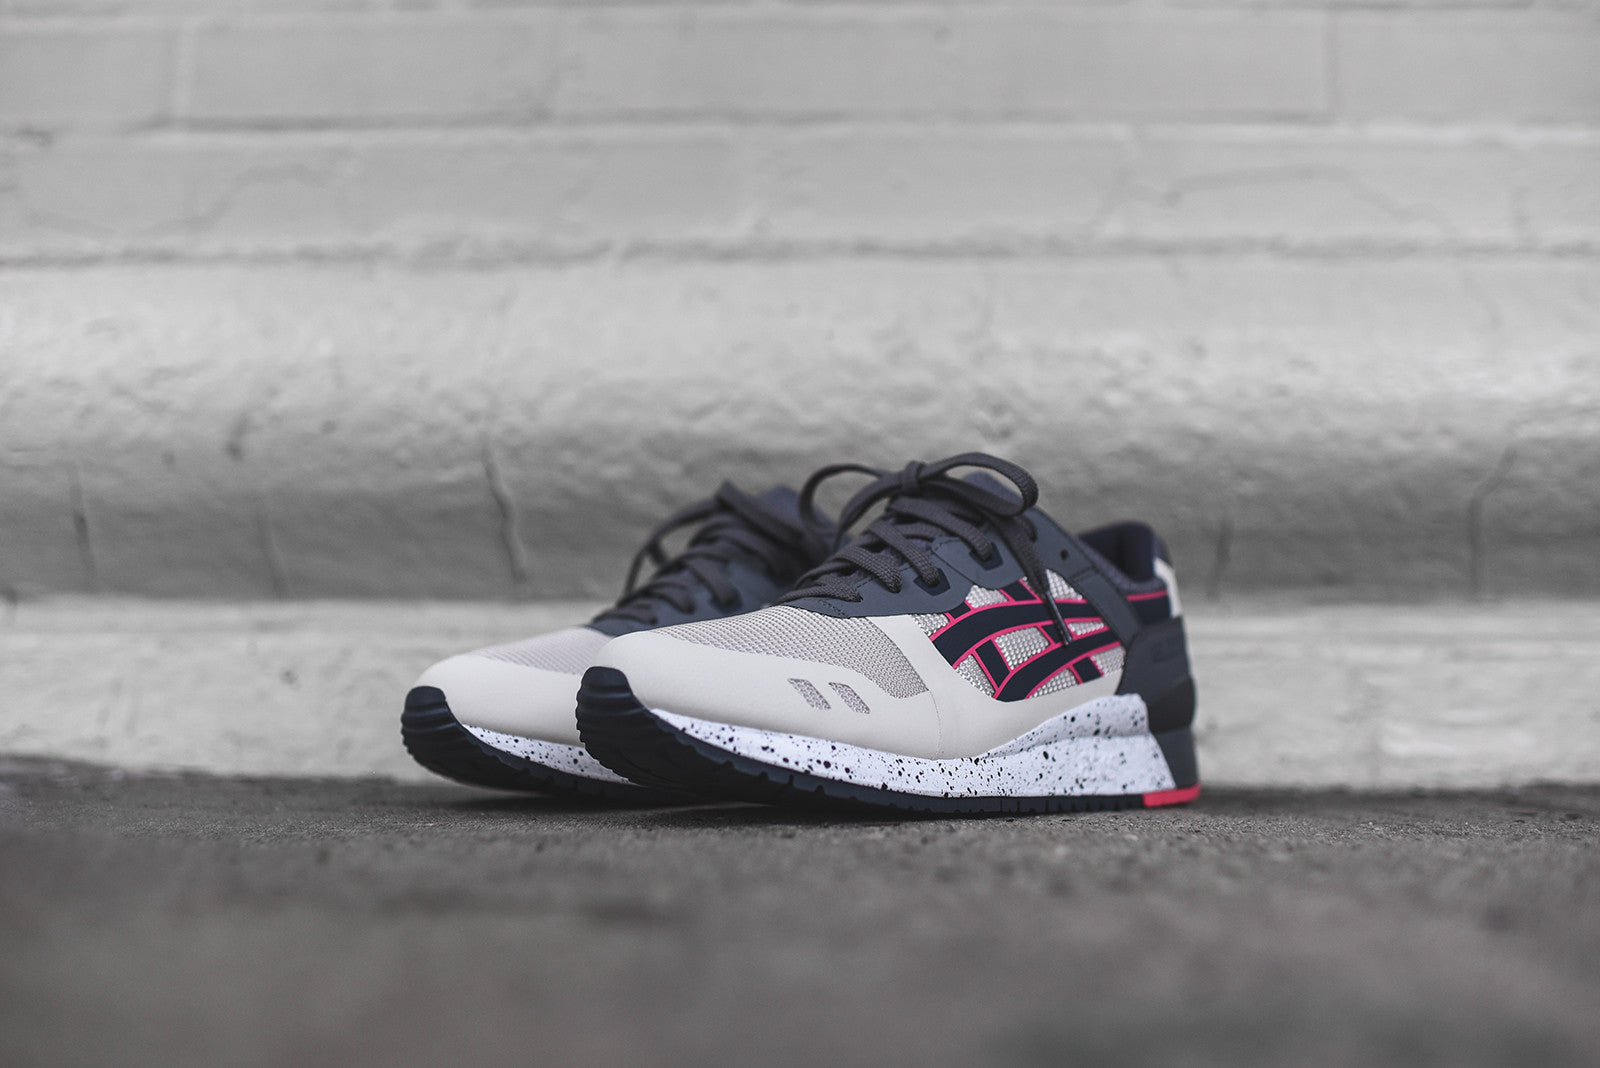 Asics Gel Lyte III NS - Off White / India Ink